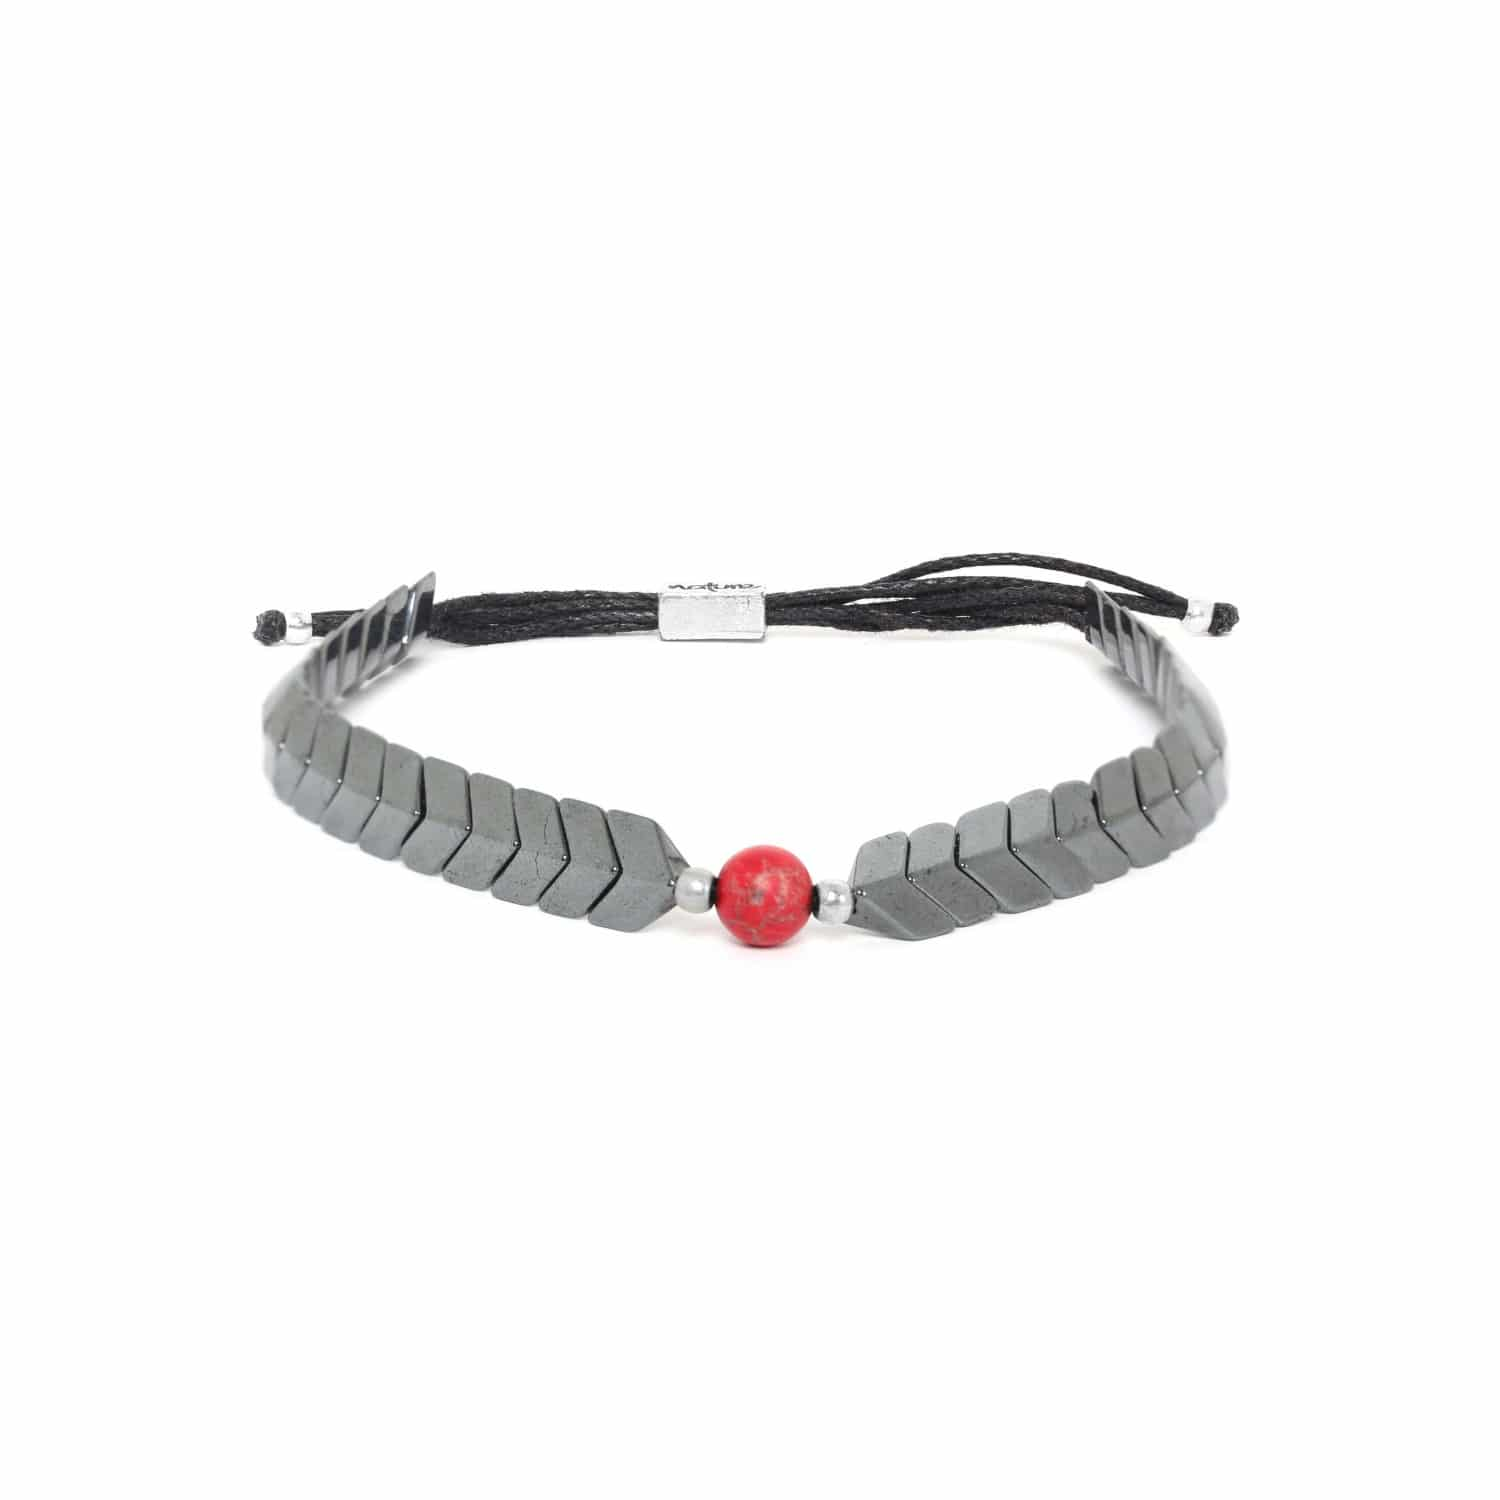 CAPORAL hematite adjustable bracelet red